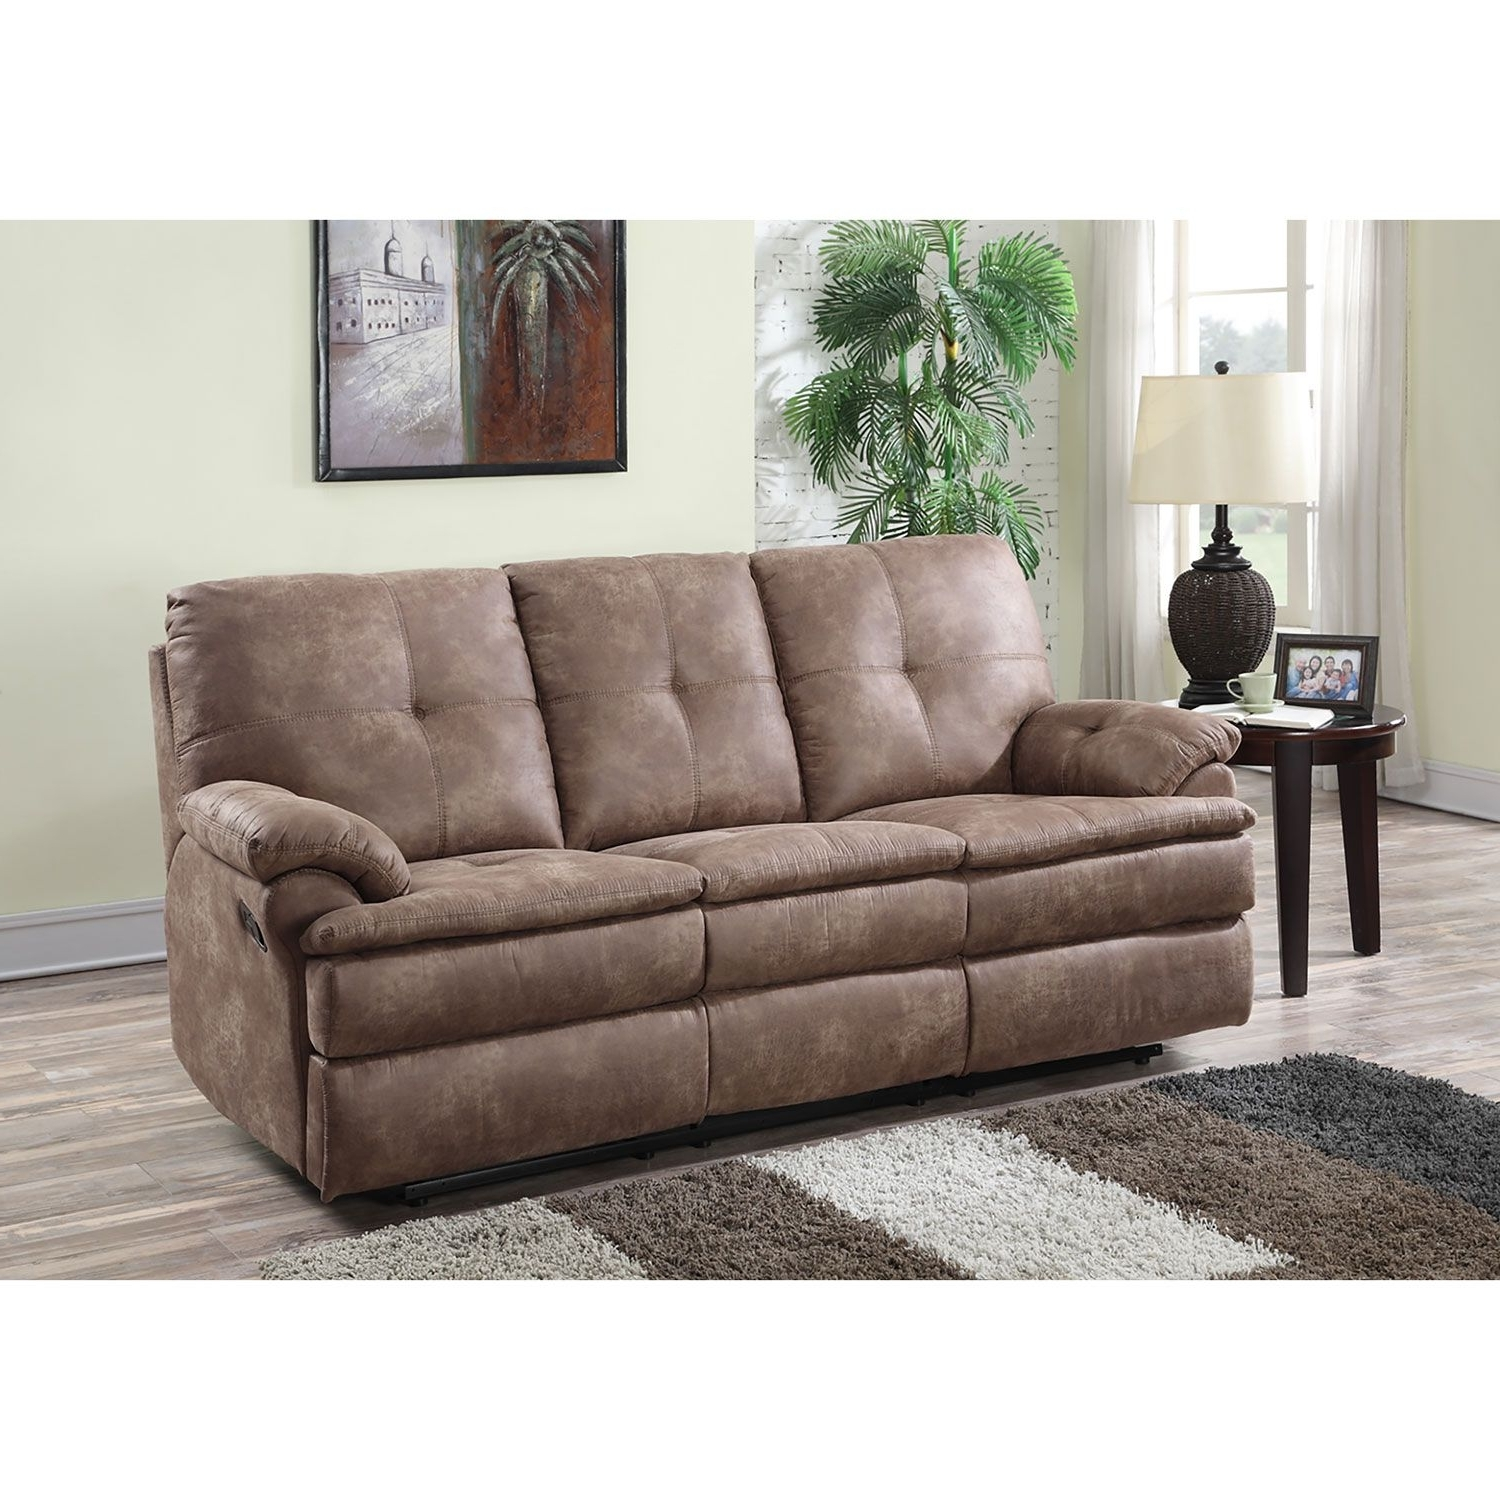 Sofa : Two Seater Fabric Recliner Sofa Fabric Reclining Sofa And For Best And Newest Sectional Sofas At Sam's Club (View 15 of 15)